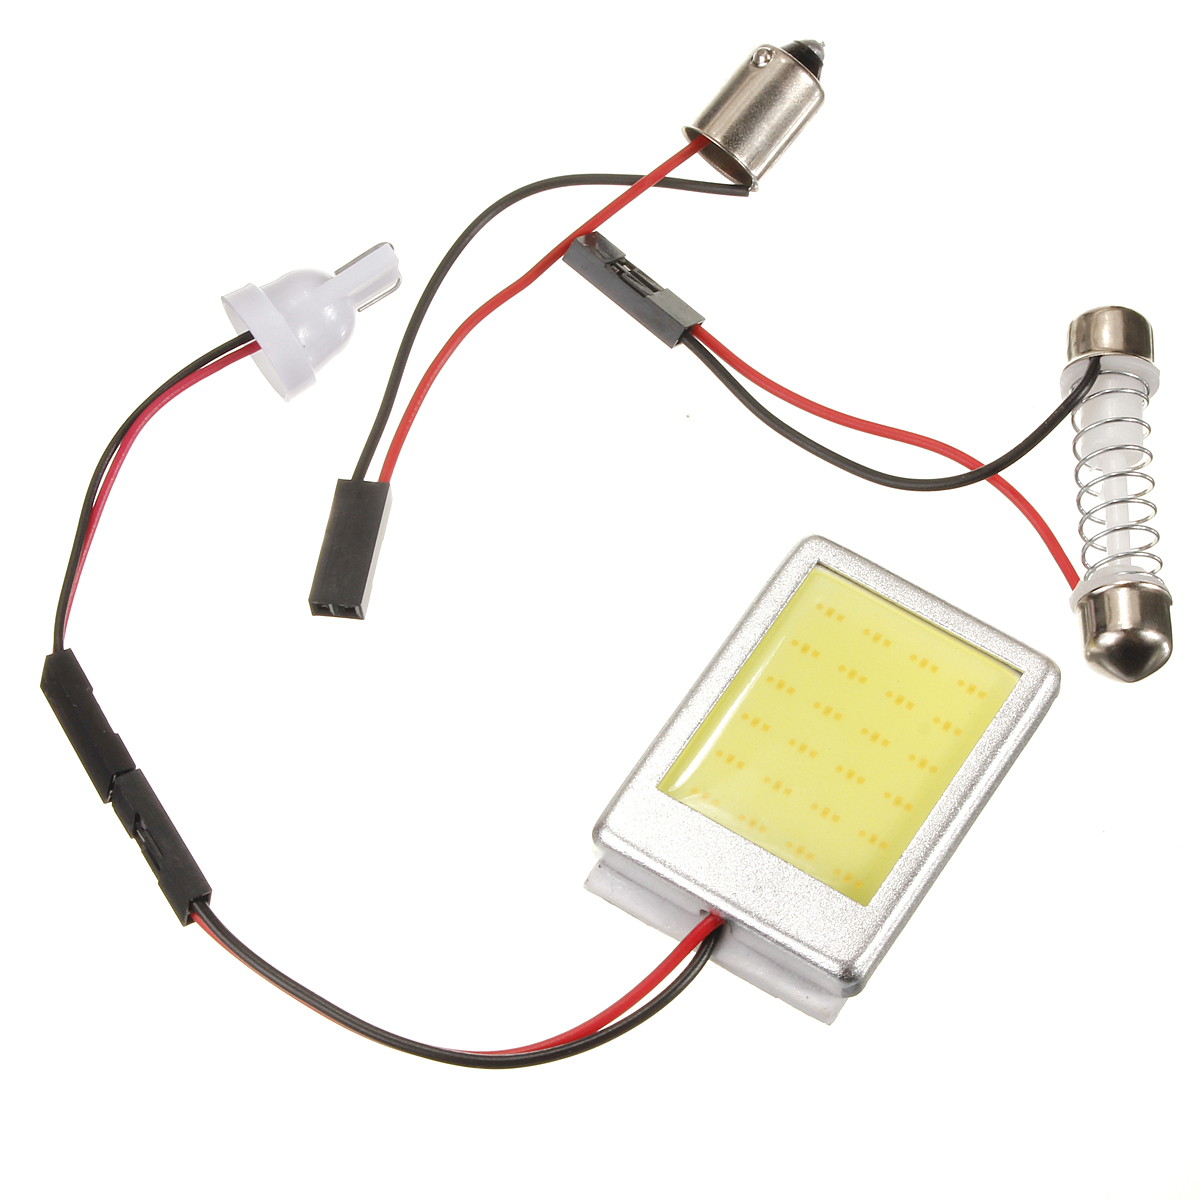 t10 ba9s white cob 24 smd led car interior panel dome festoon adapter light bulb ebay. Black Bedroom Furniture Sets. Home Design Ideas